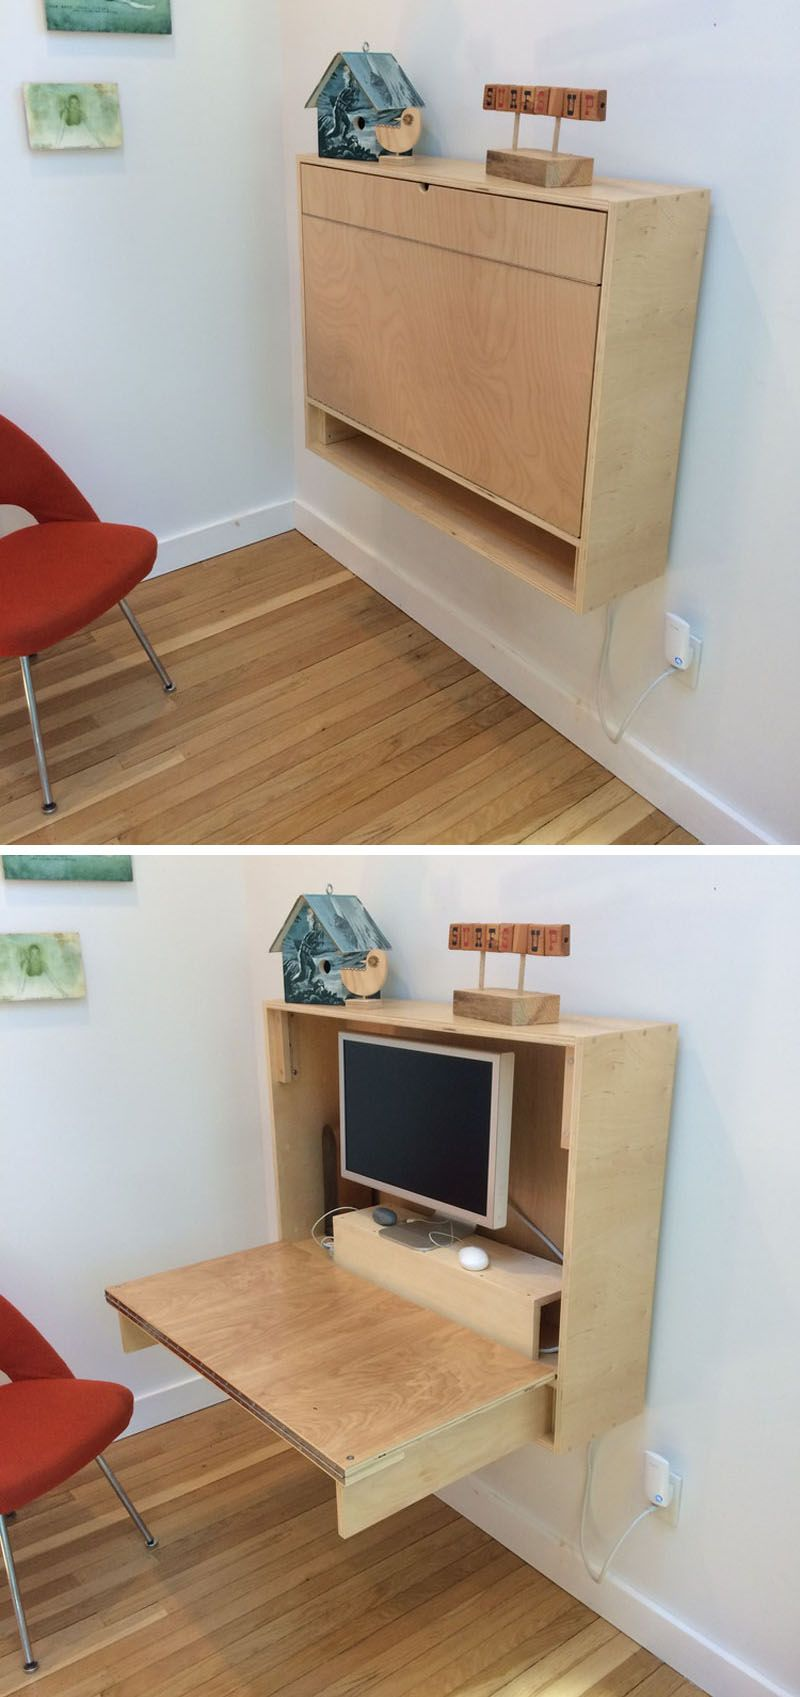 Desk For Small Space: 16 Wall Mounted Desk Ideas That Are Great For Small Spaces